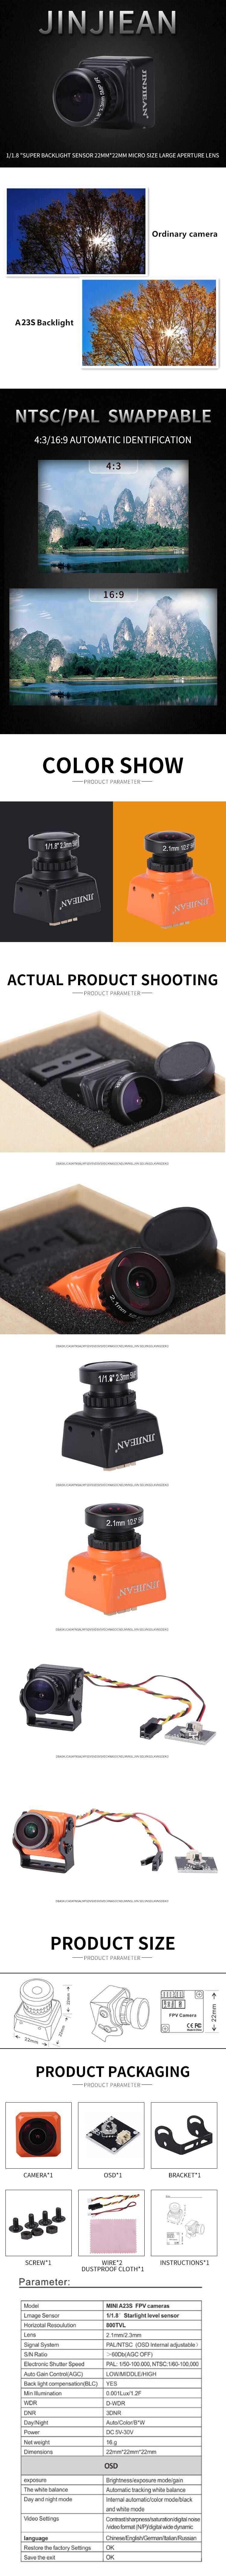 JIJIEAN A23S 1/1.8'' Starlight 800TVL 2.1mm/2.3mm Lens Mini FPV Camera NTSC/PAL Switchable For RC Racer Drone